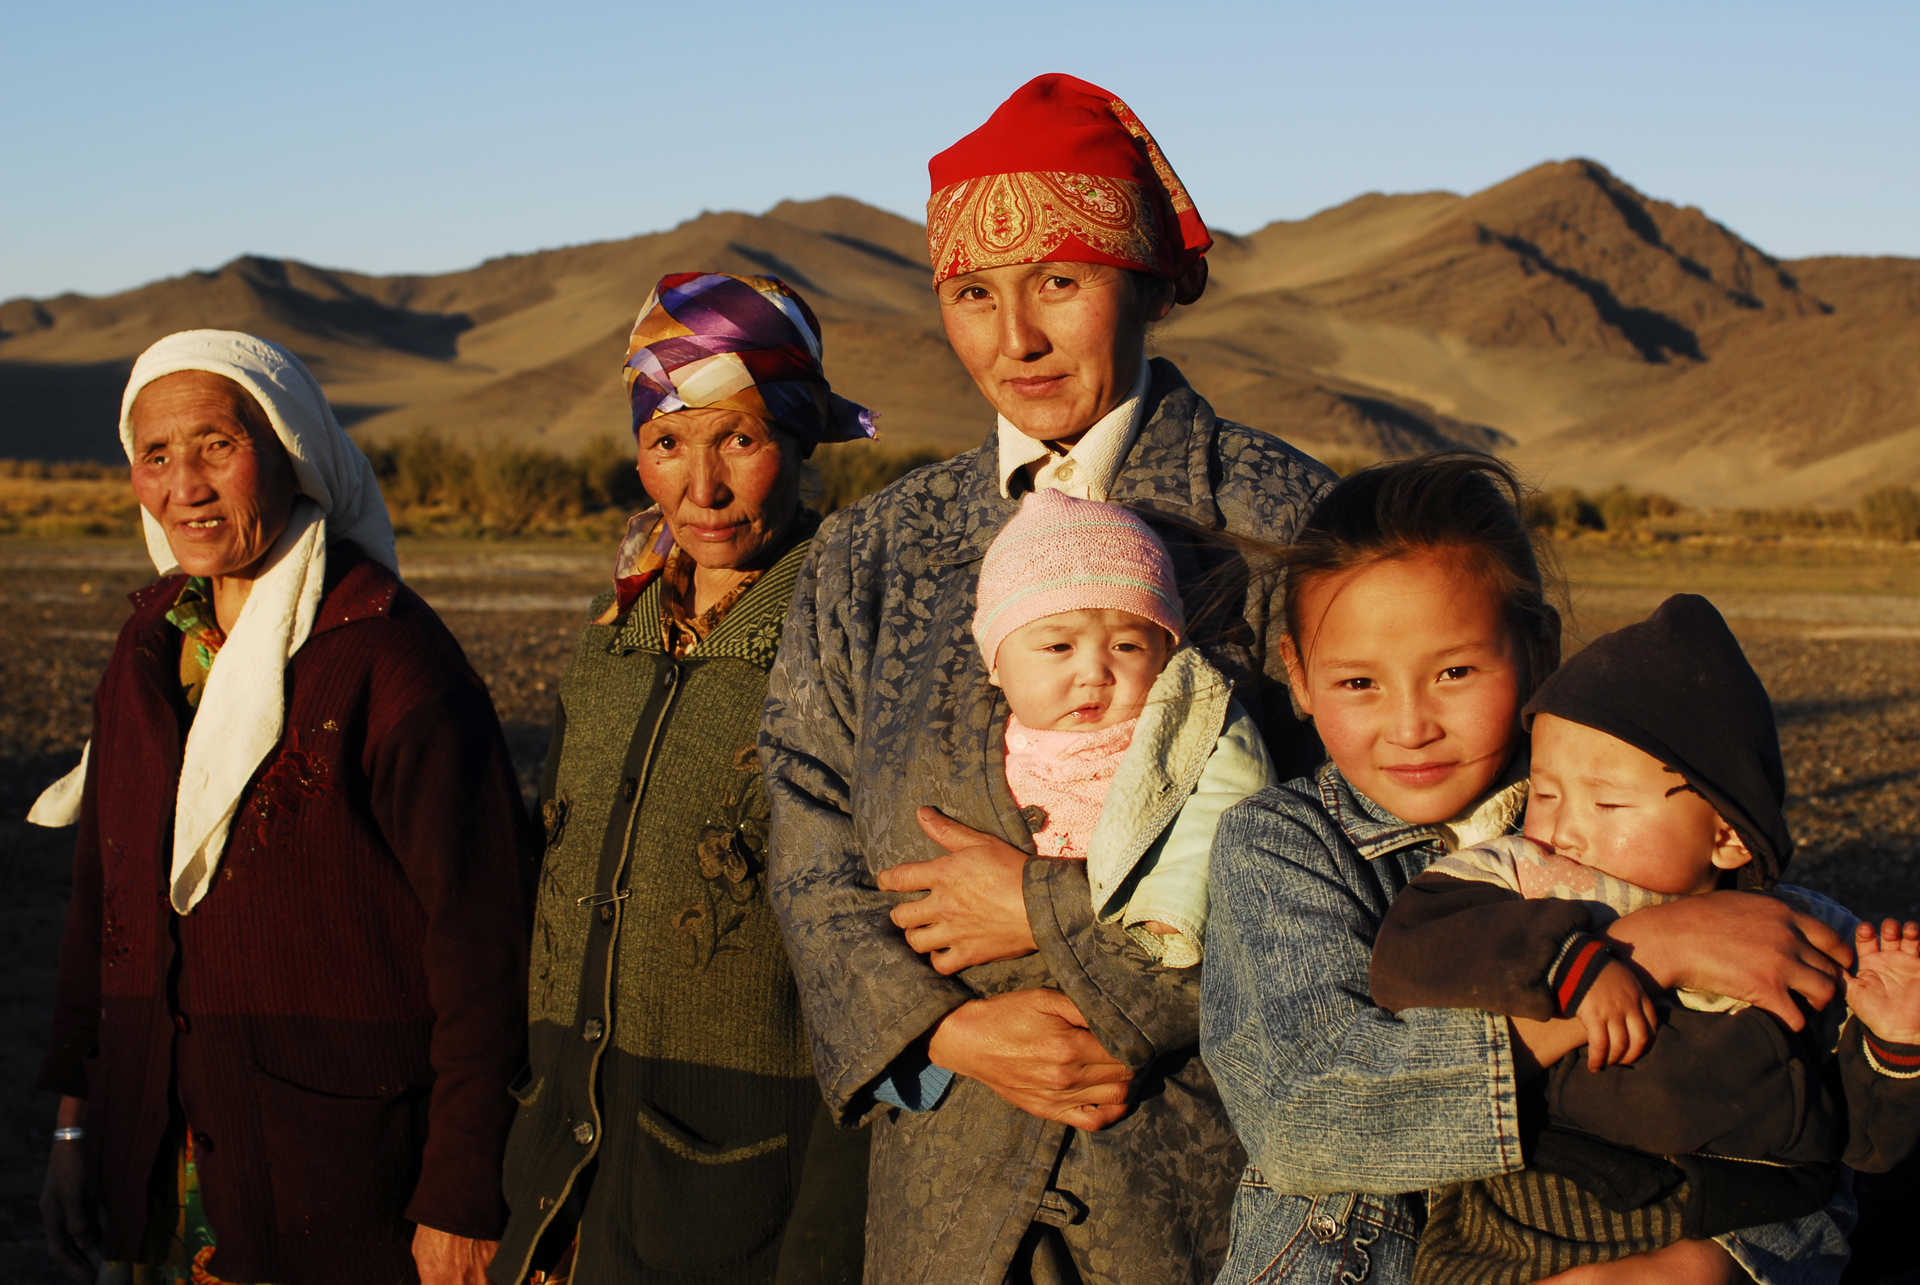 Mongolie, population locale